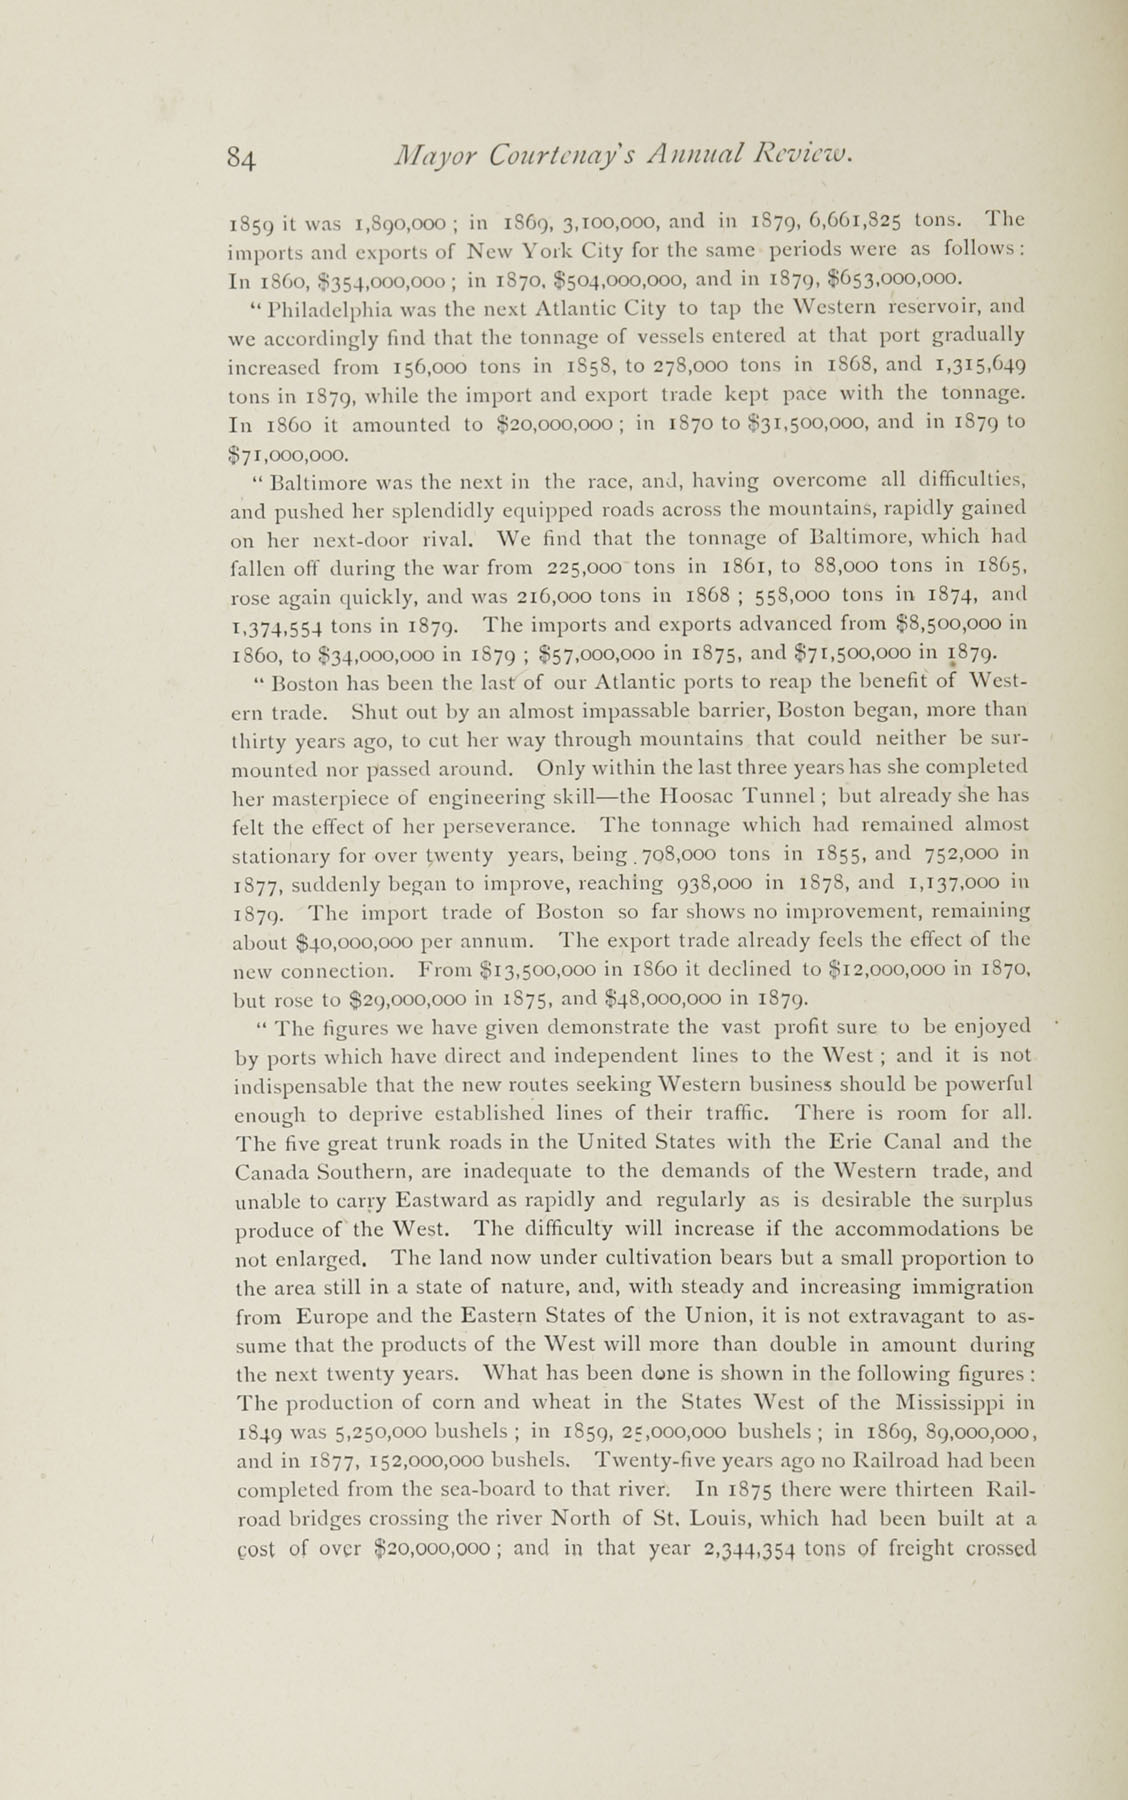 Charleston Year book, 1880, page 84